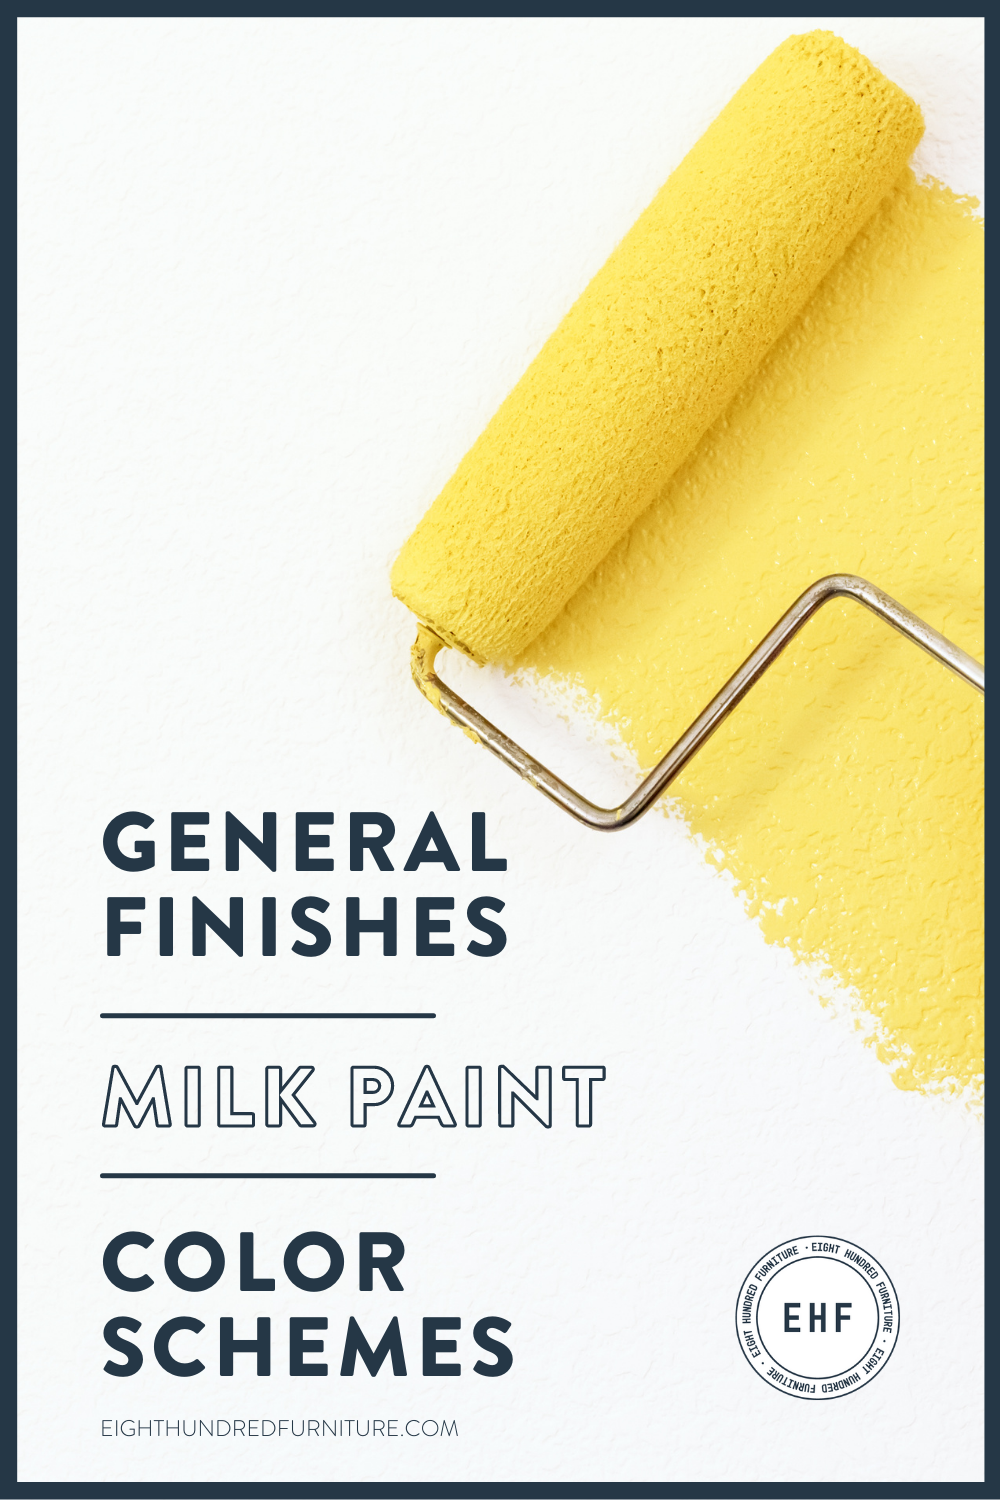 General Finishes Milk Paint Color Schemes, Colorways, Eight Hundred Furniture